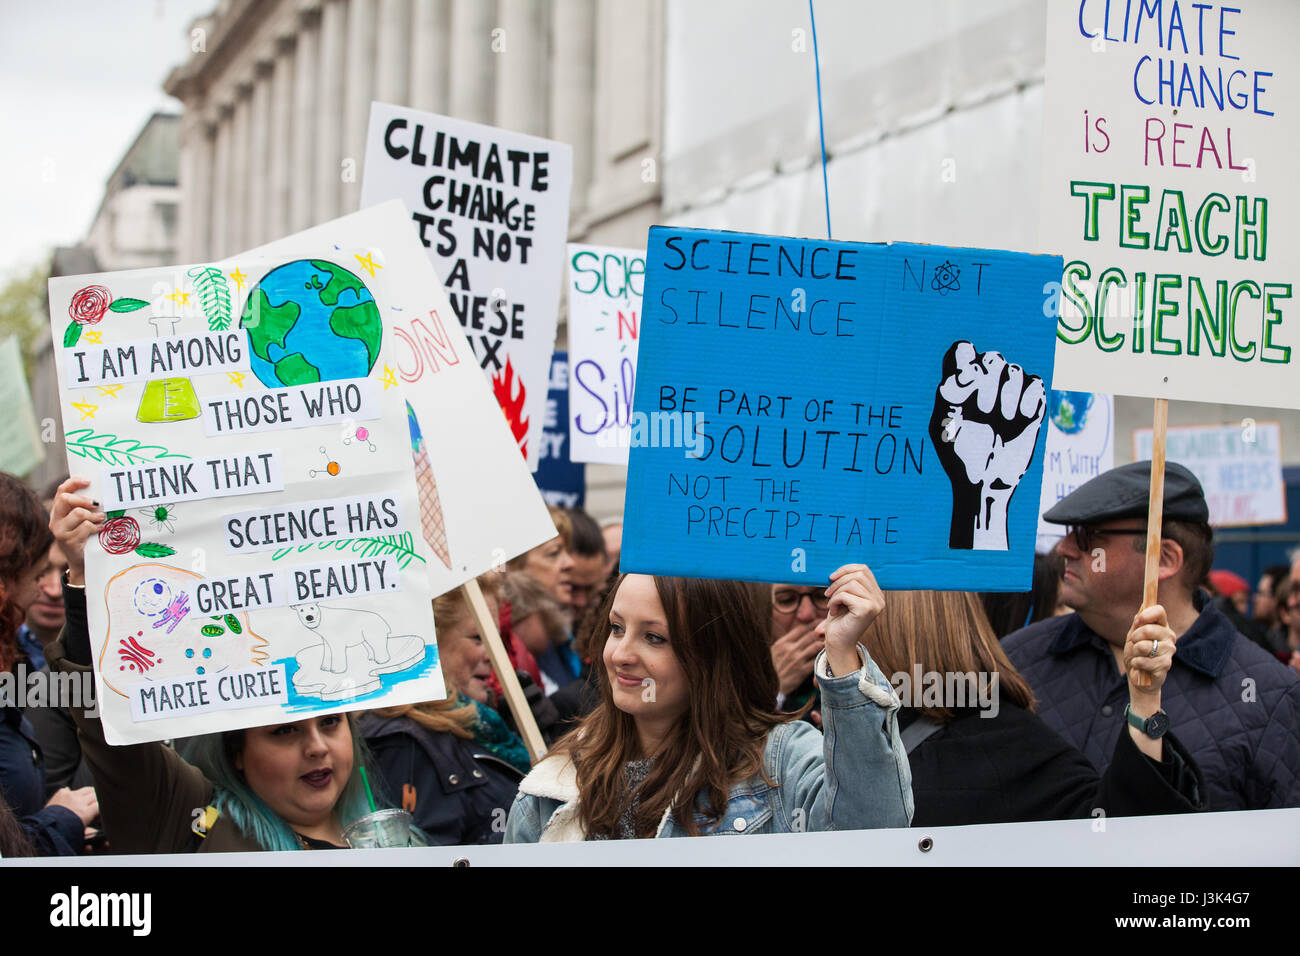 London, UK. 22nd April, 2017. Scientists prepare for the March for Science in Kensington on Earth Day. Stock Photo